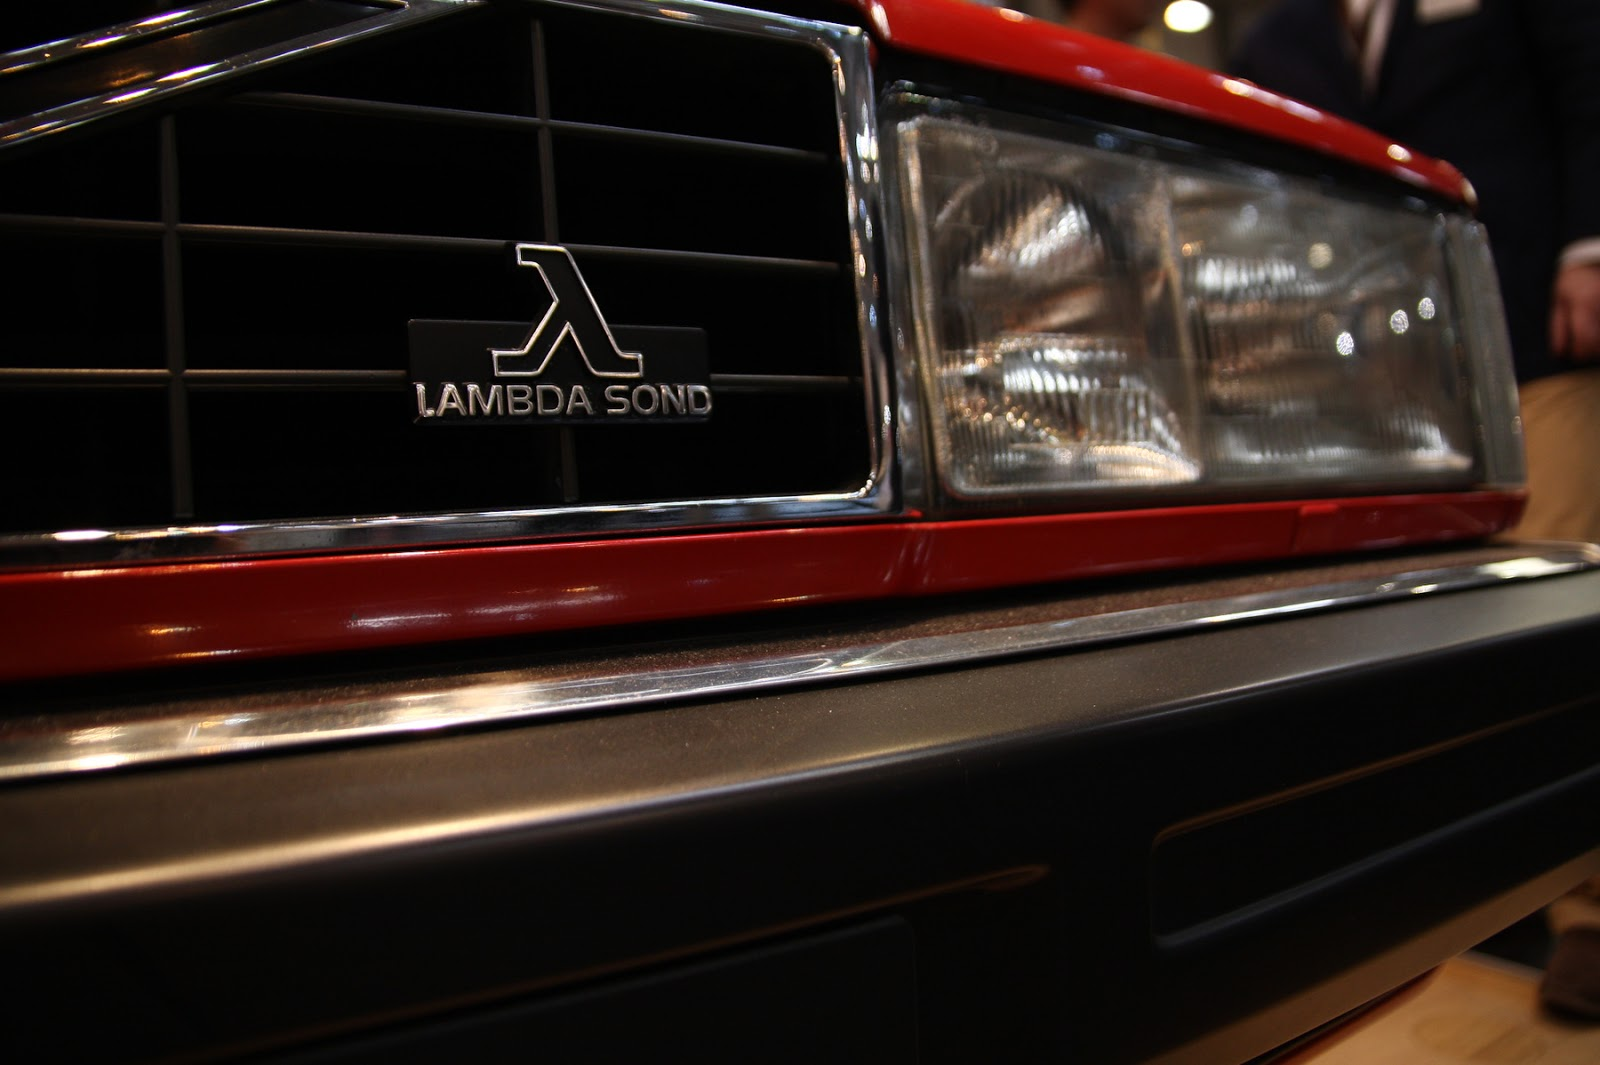 My world of Volvo: Volvo 780 @ Techno Clica Essen 2015